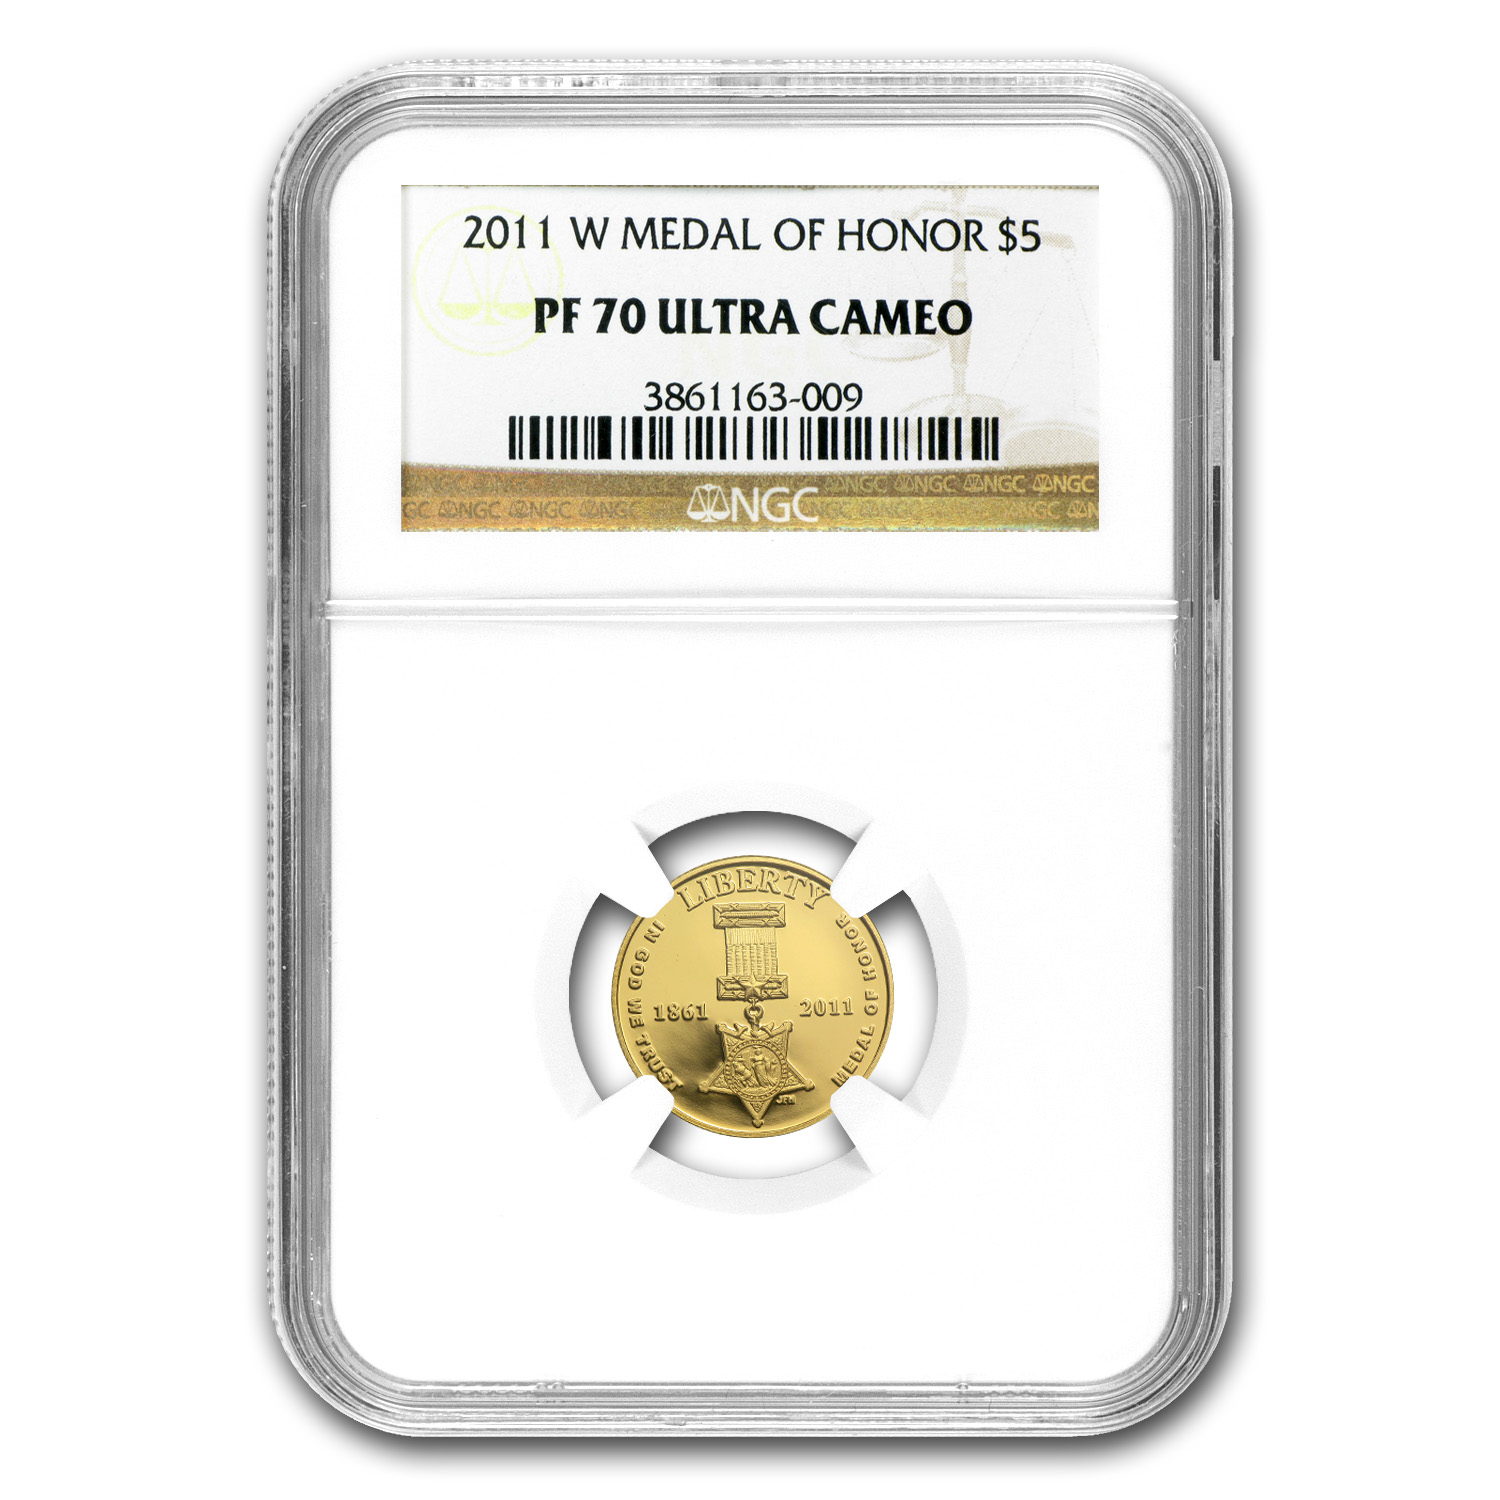 2011-W Gold $5 Commemorative Medal of Honor PF-70 NGC